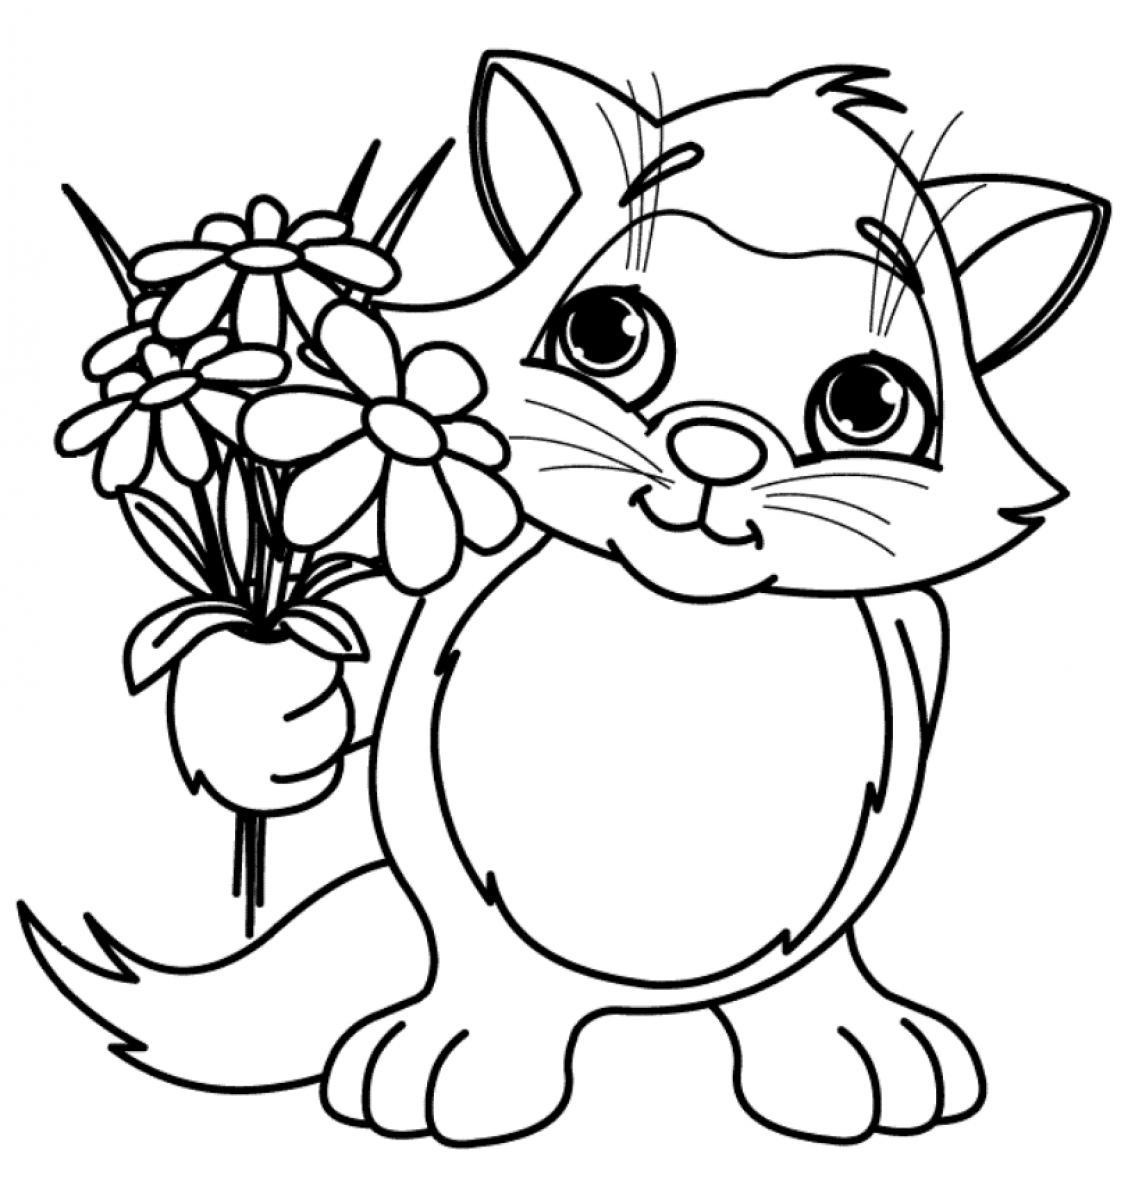 Free Printable Kids Coloring Pages | 1200x1135